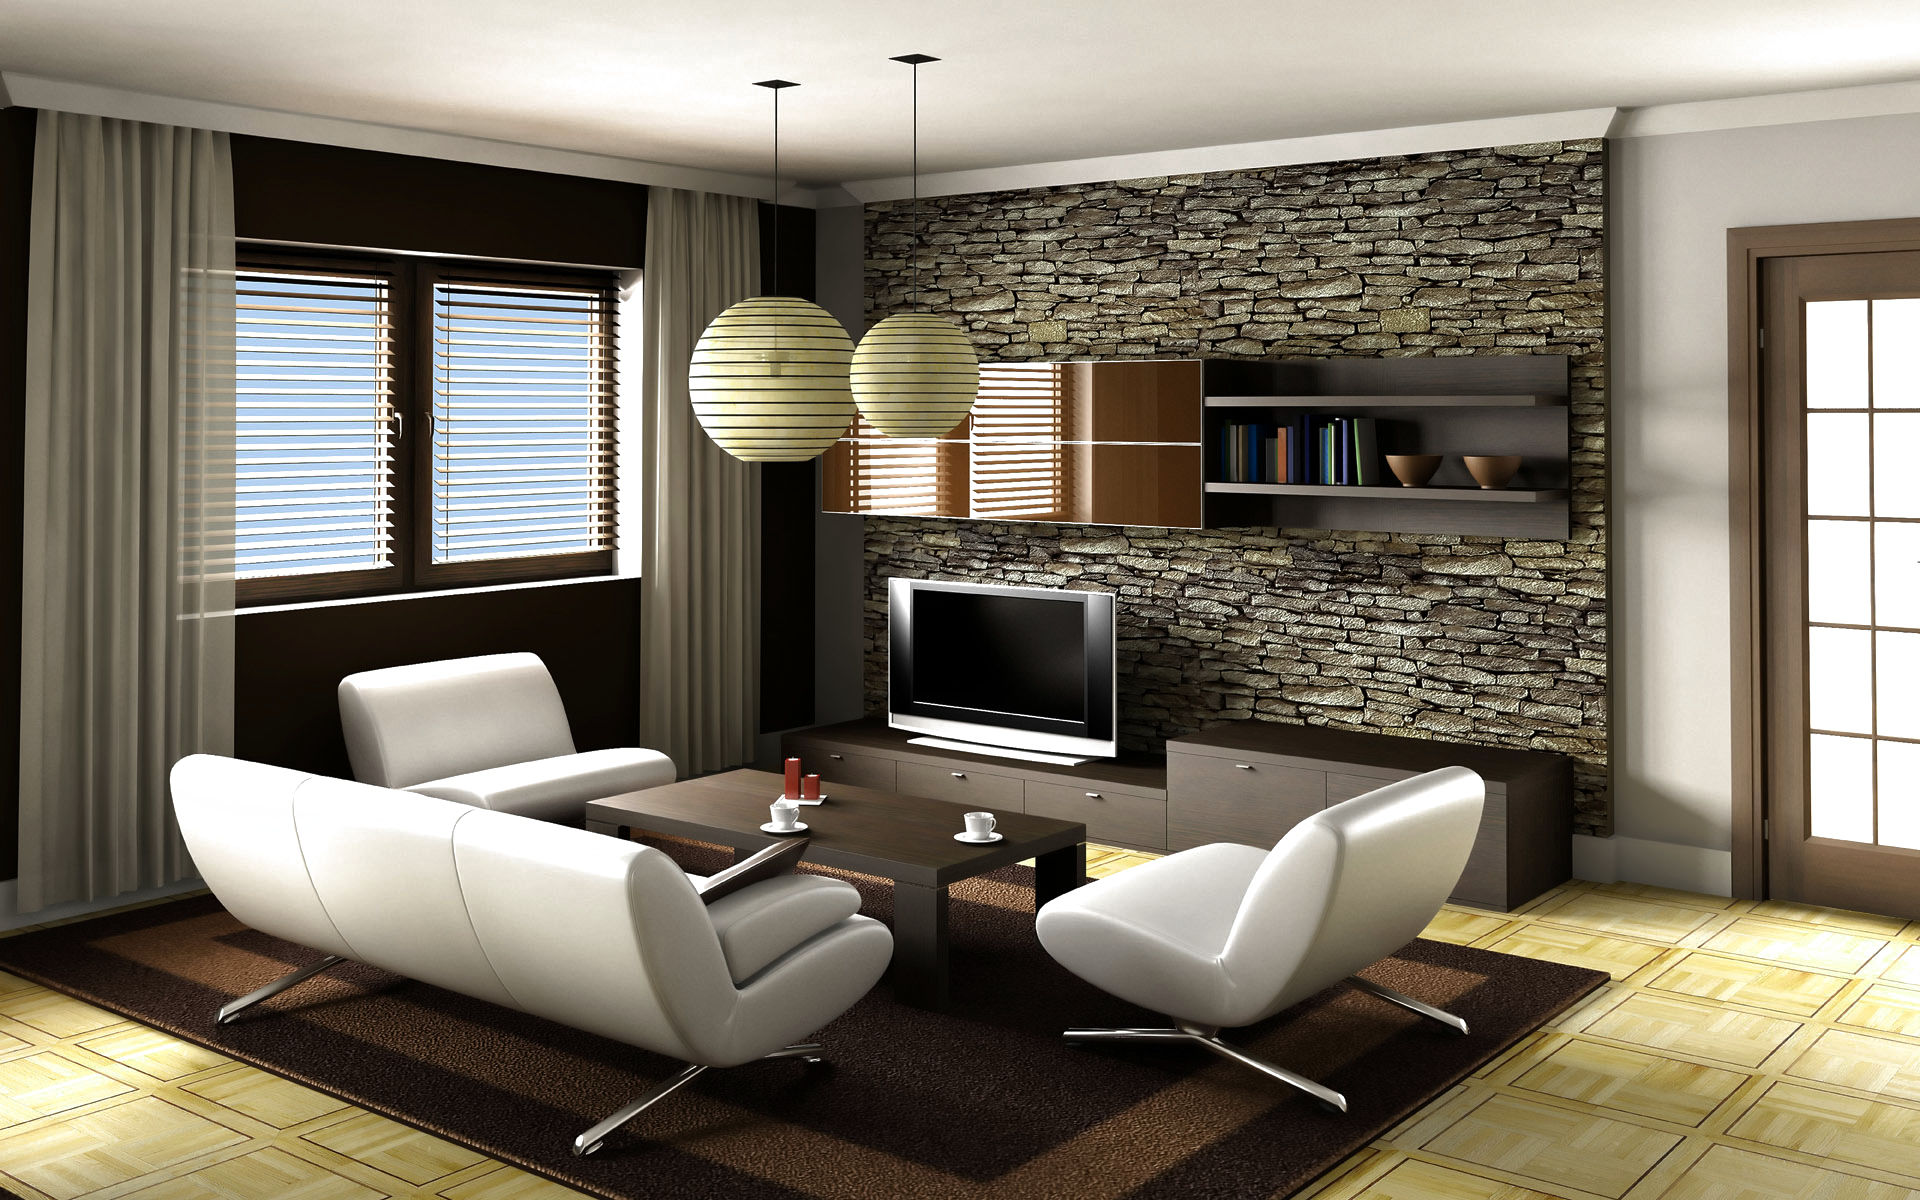 16 modern living room furniture ideas design hgnv com for Sitting room chairs designs